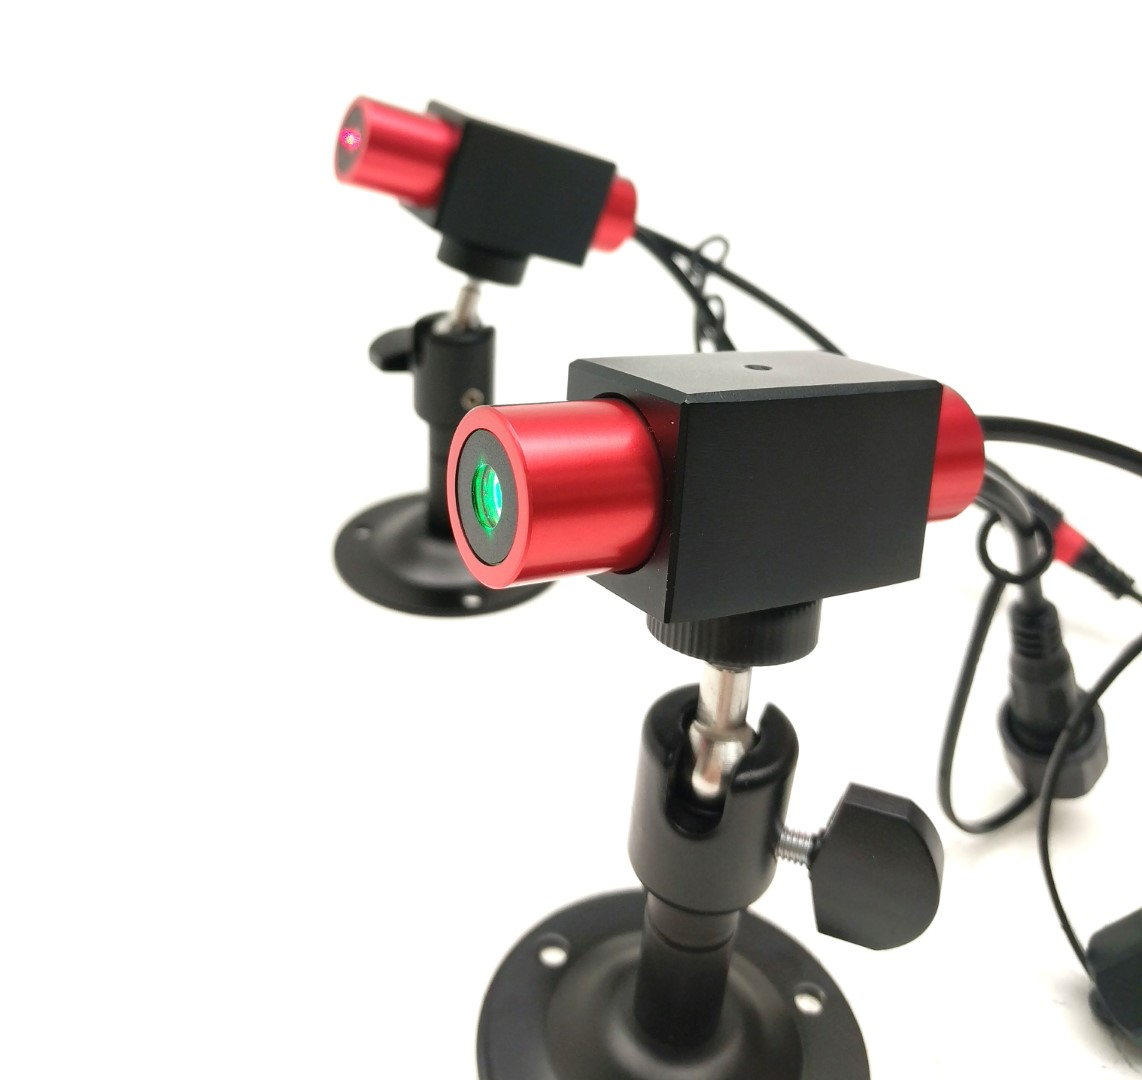 5 mW 635 nm Red Premium Structured Cross Laser, 5° fan angle, adjustable focus, TTL+, Sealed IP67